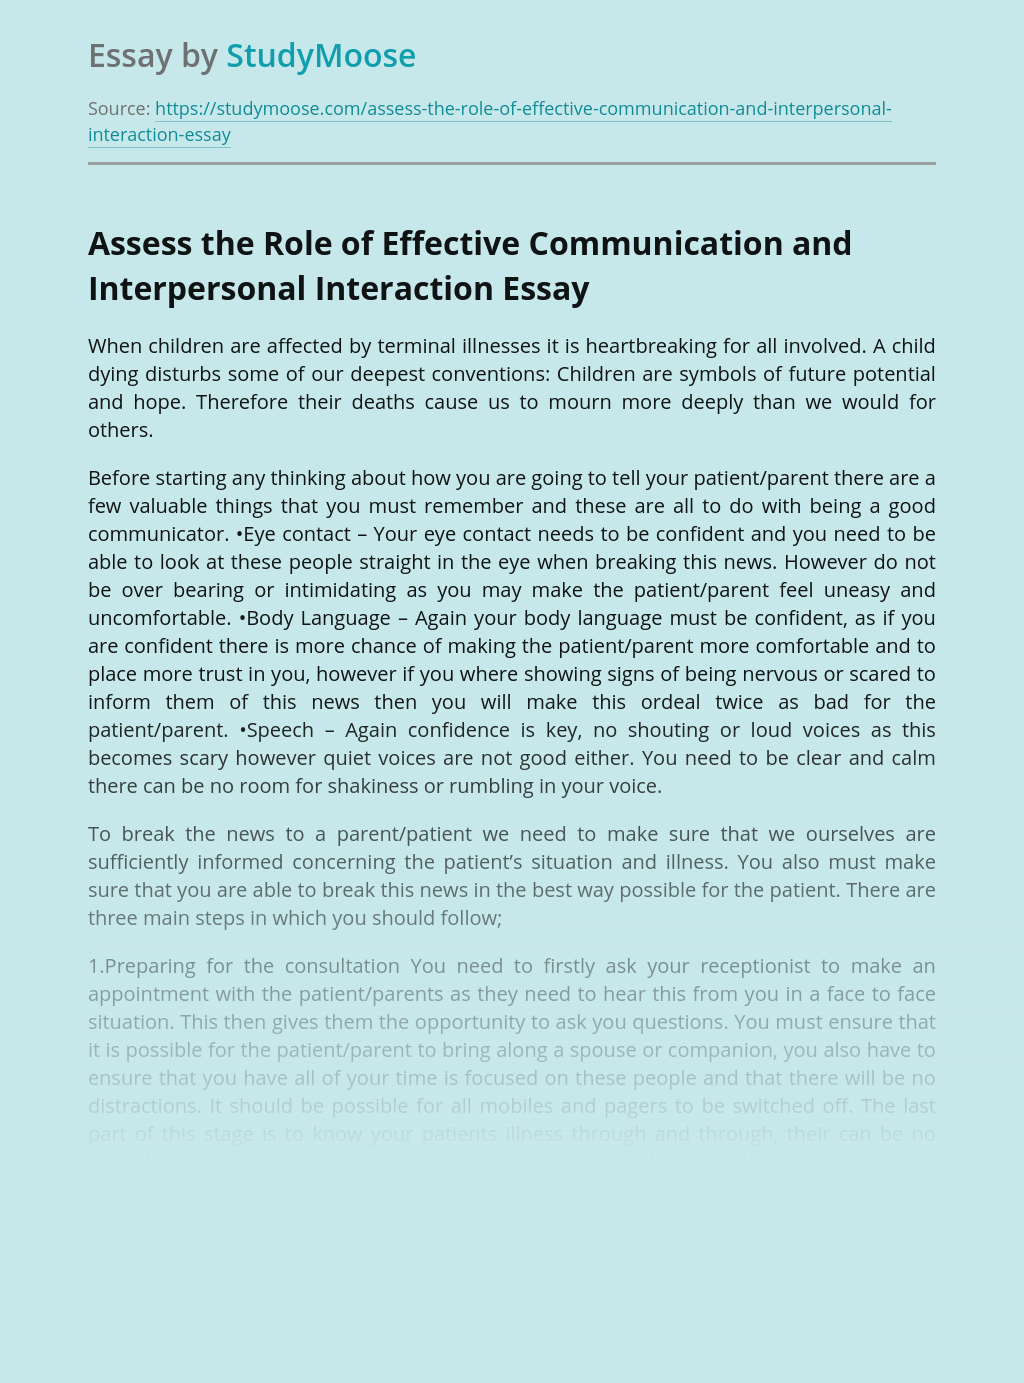 Assess the Role of Effective Communication and Interpersonal Interaction